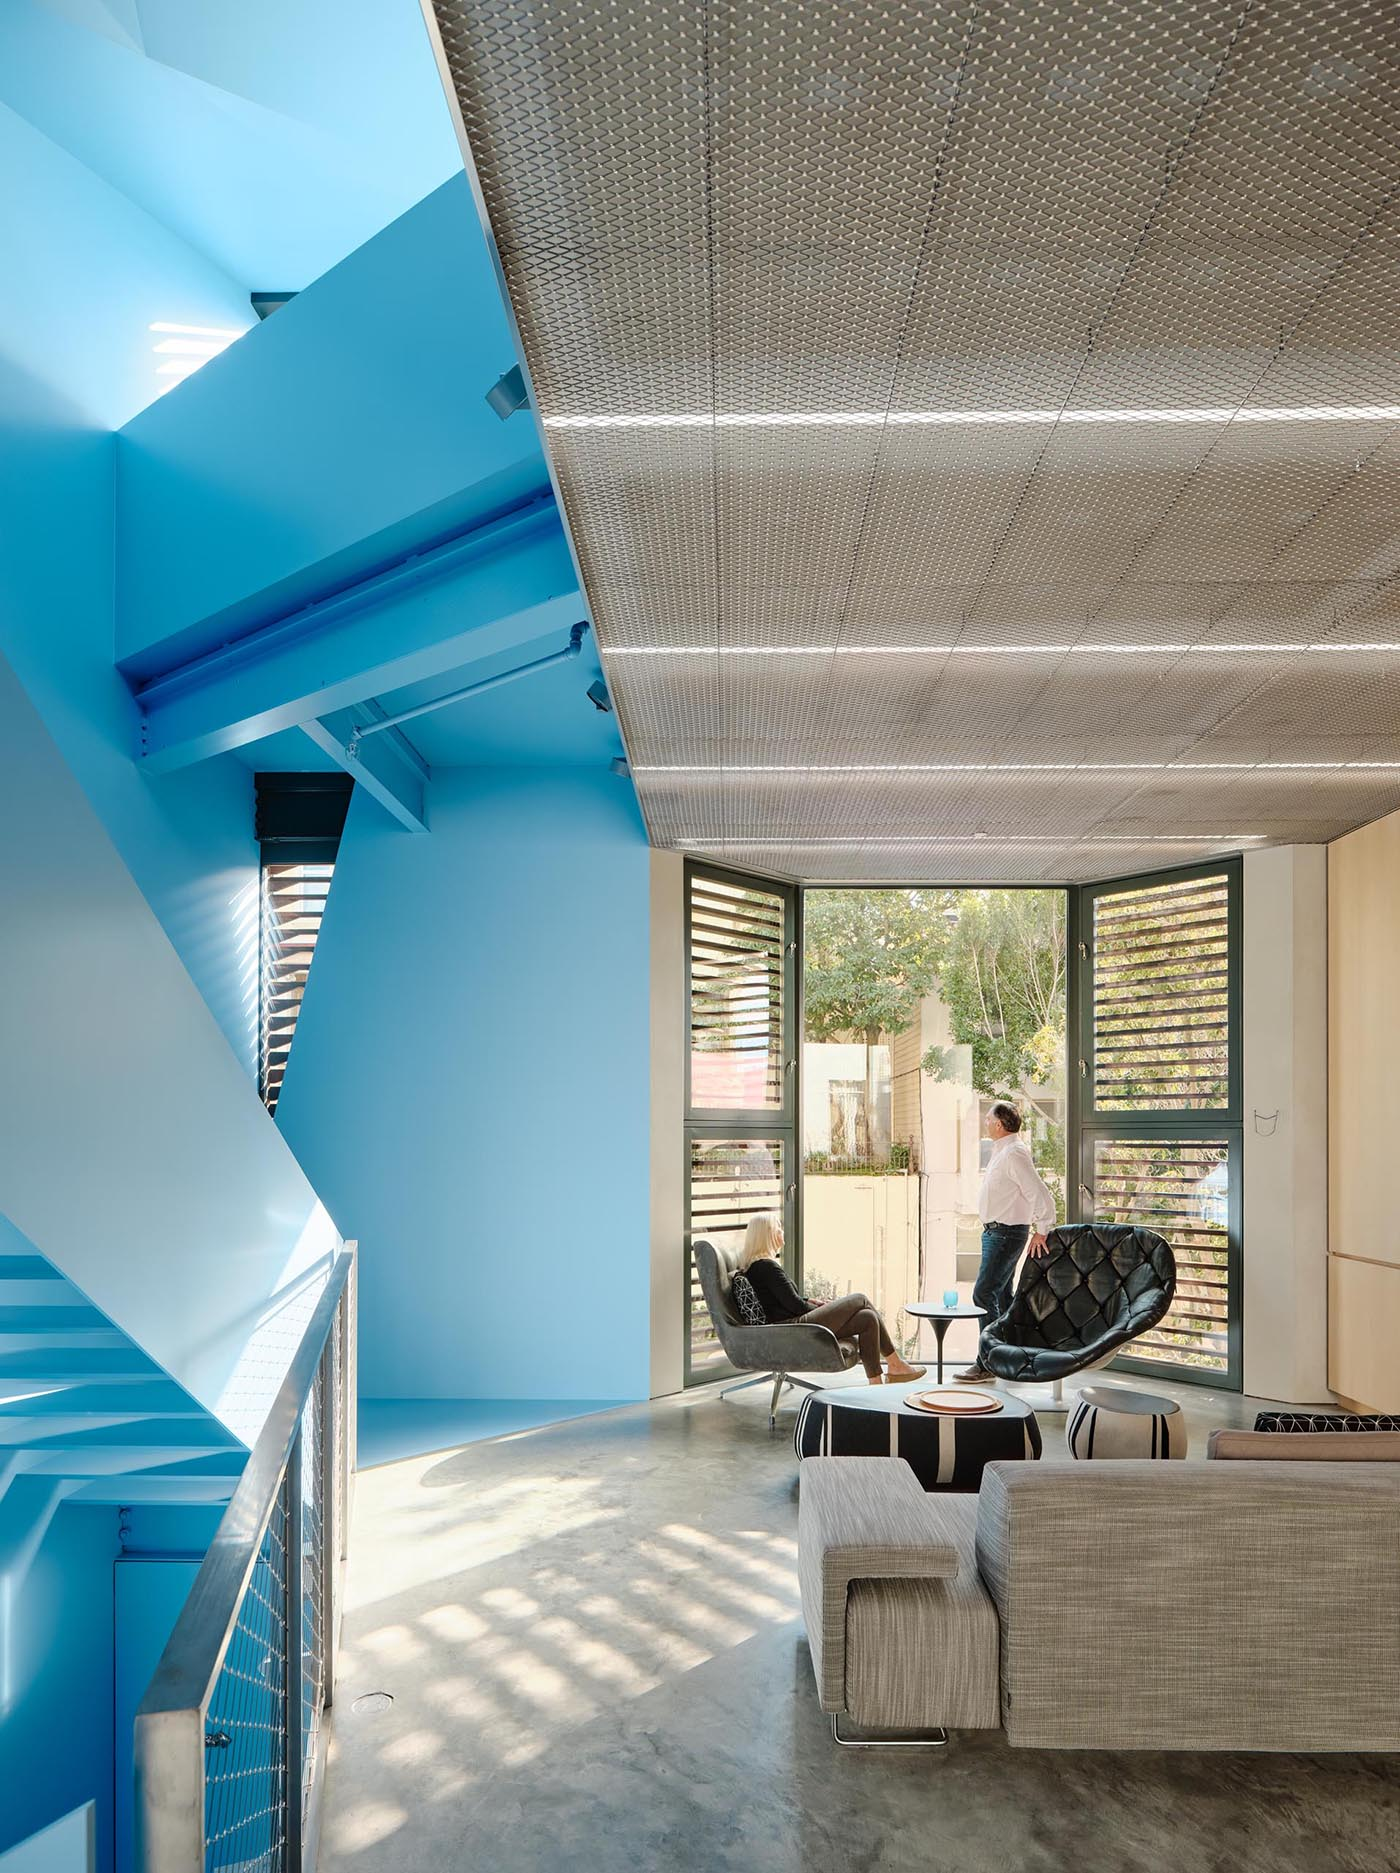 A modern home with a pastel blue staircase, and a living room with a high ceiling and bay window.